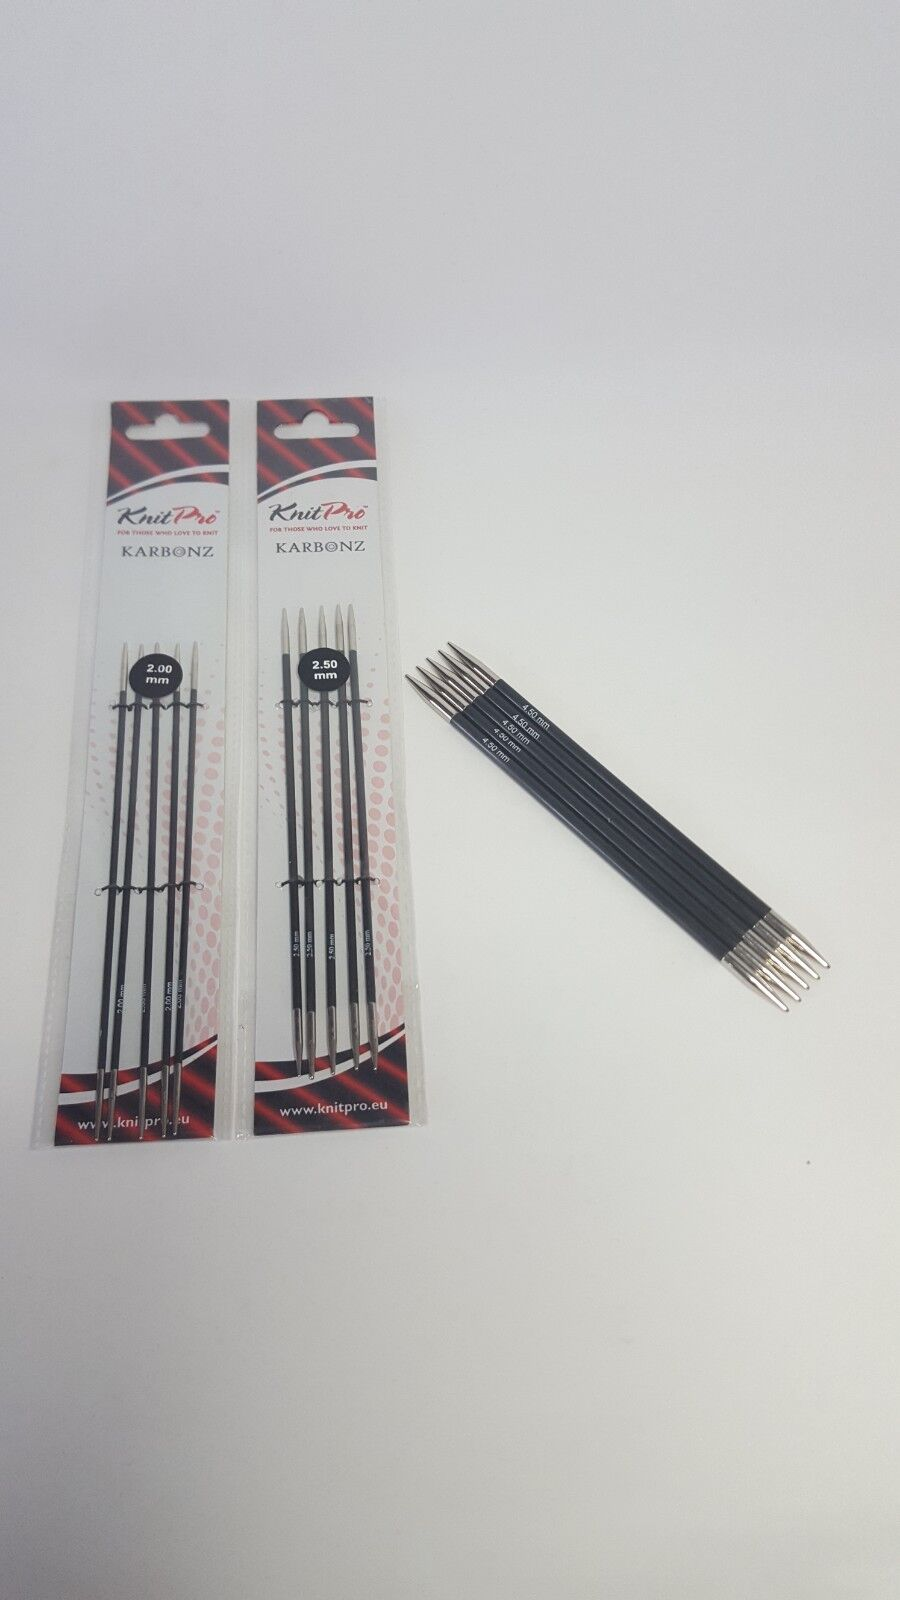 Knit Pro Karbonz 15cm or 20cm coloured double pointed sets of 5 knitting needles